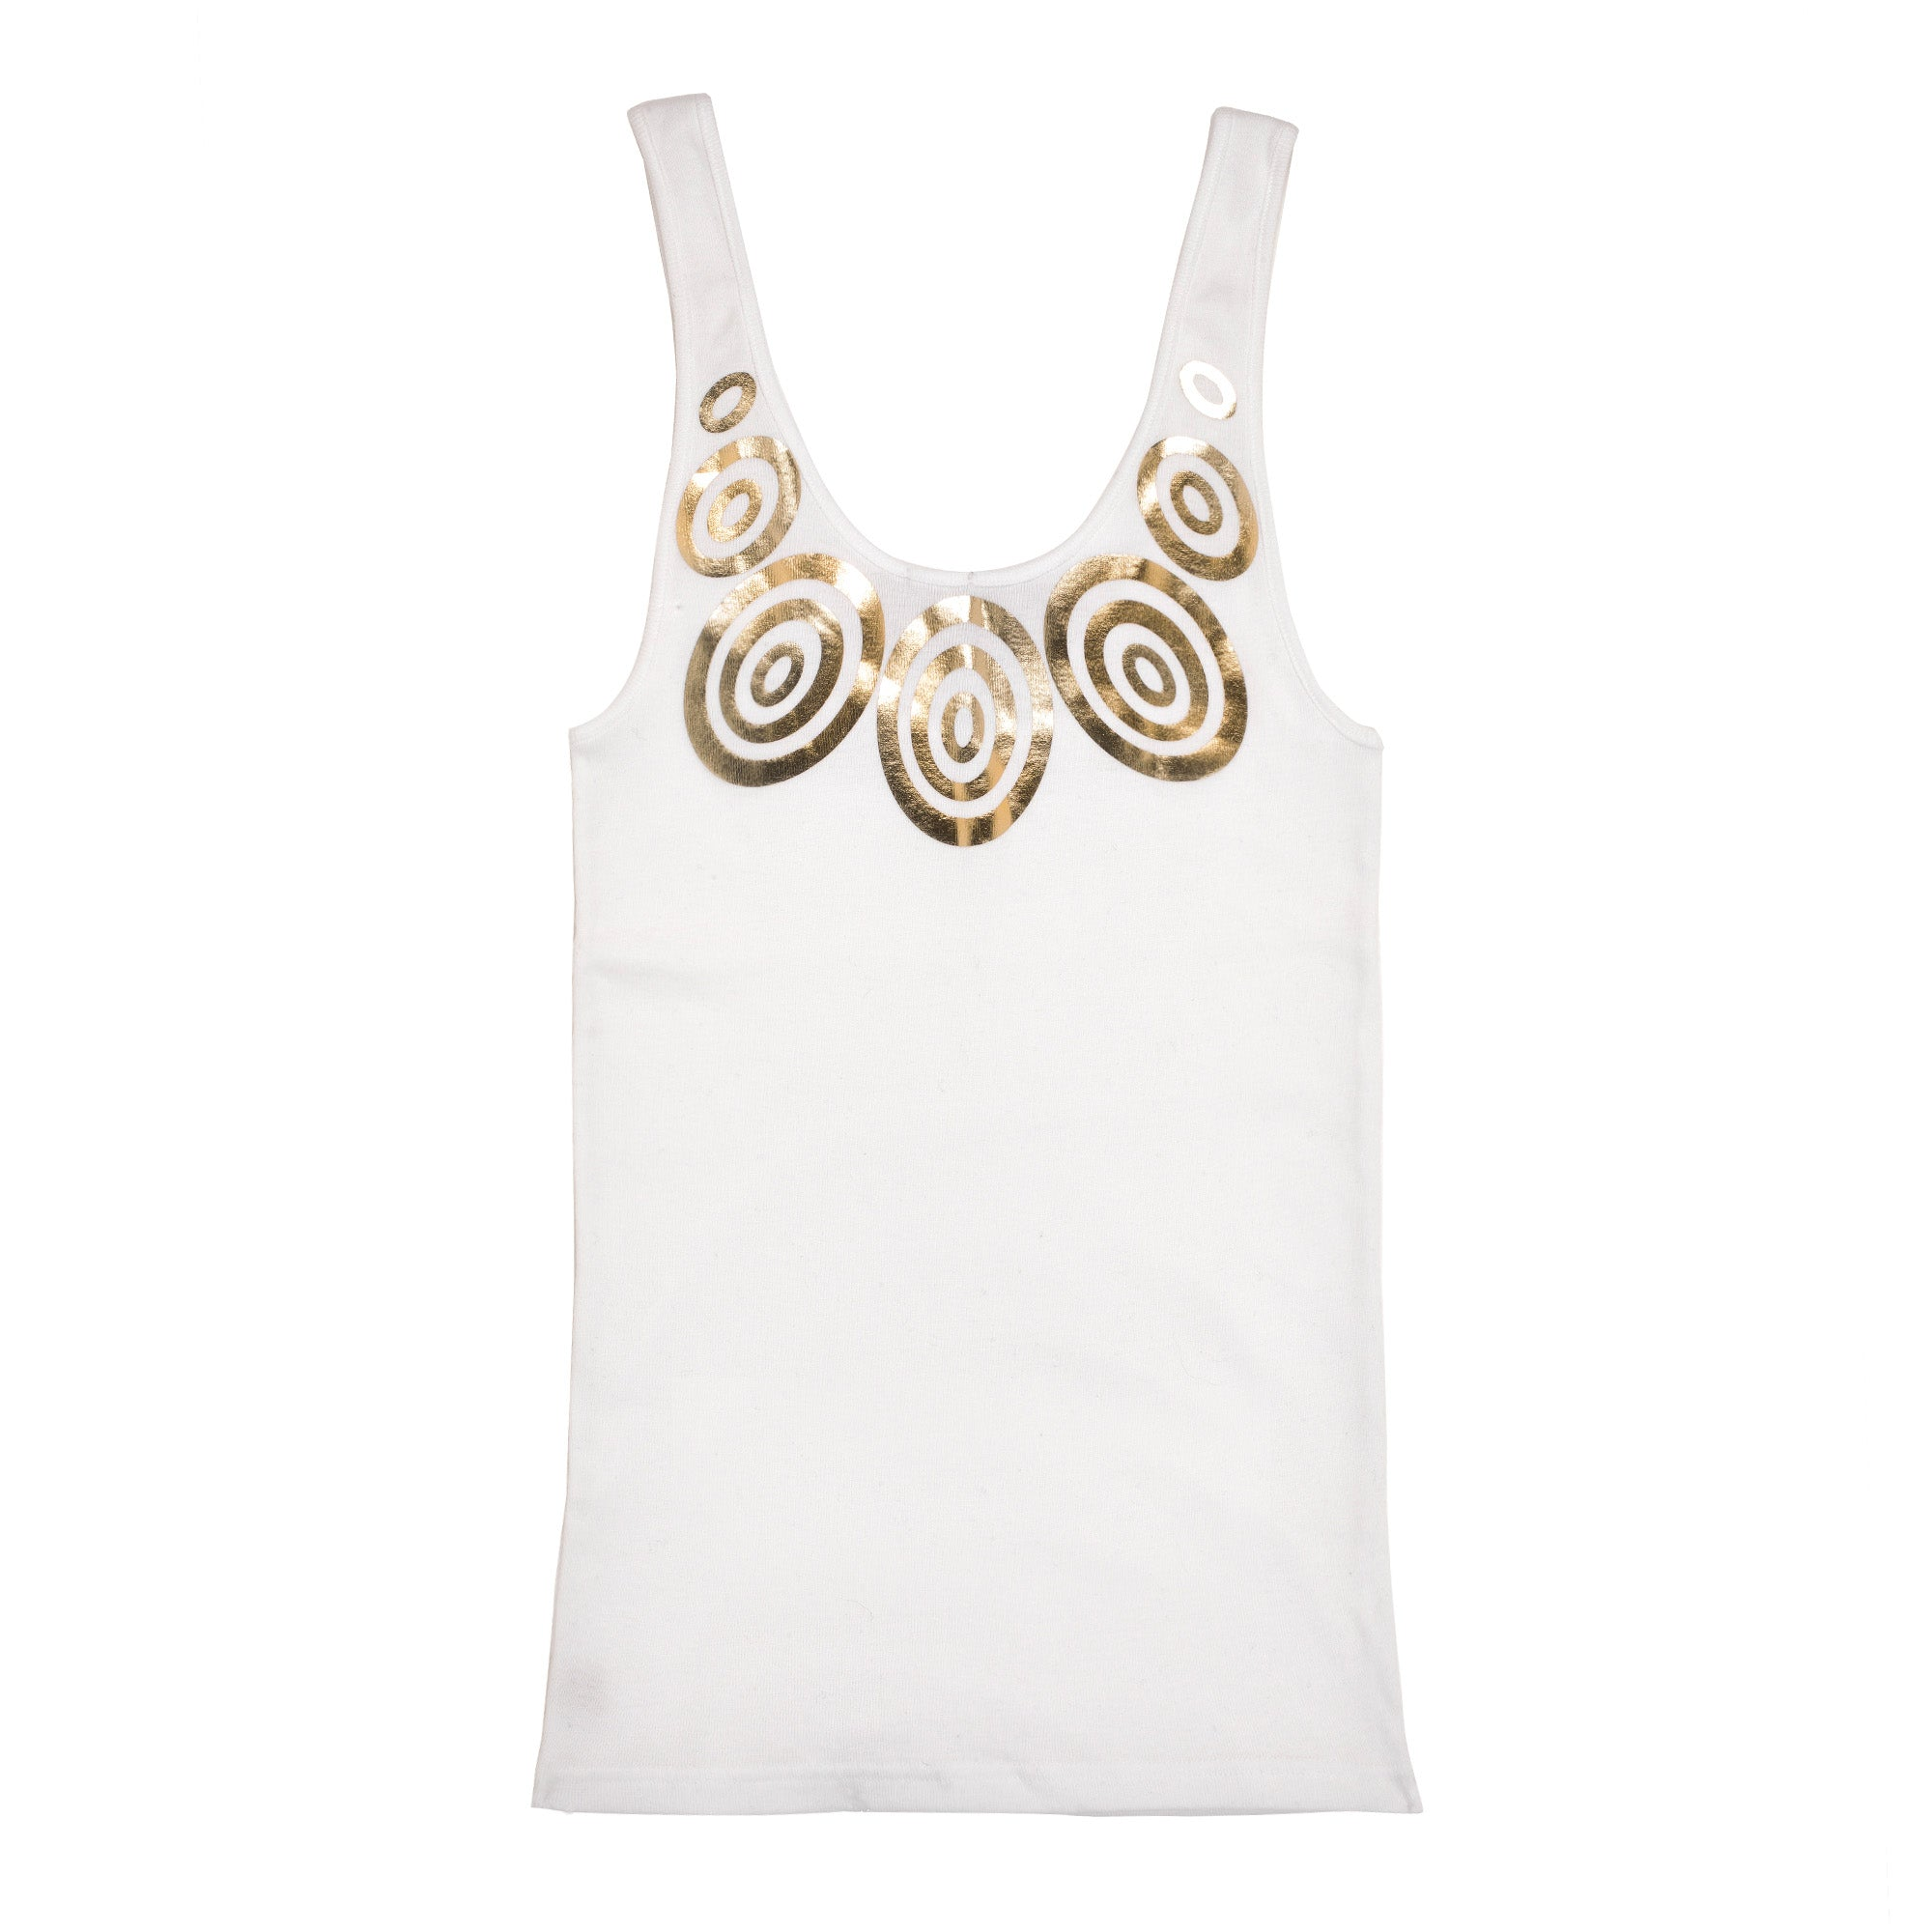 The Kyklos Gold Tank Top